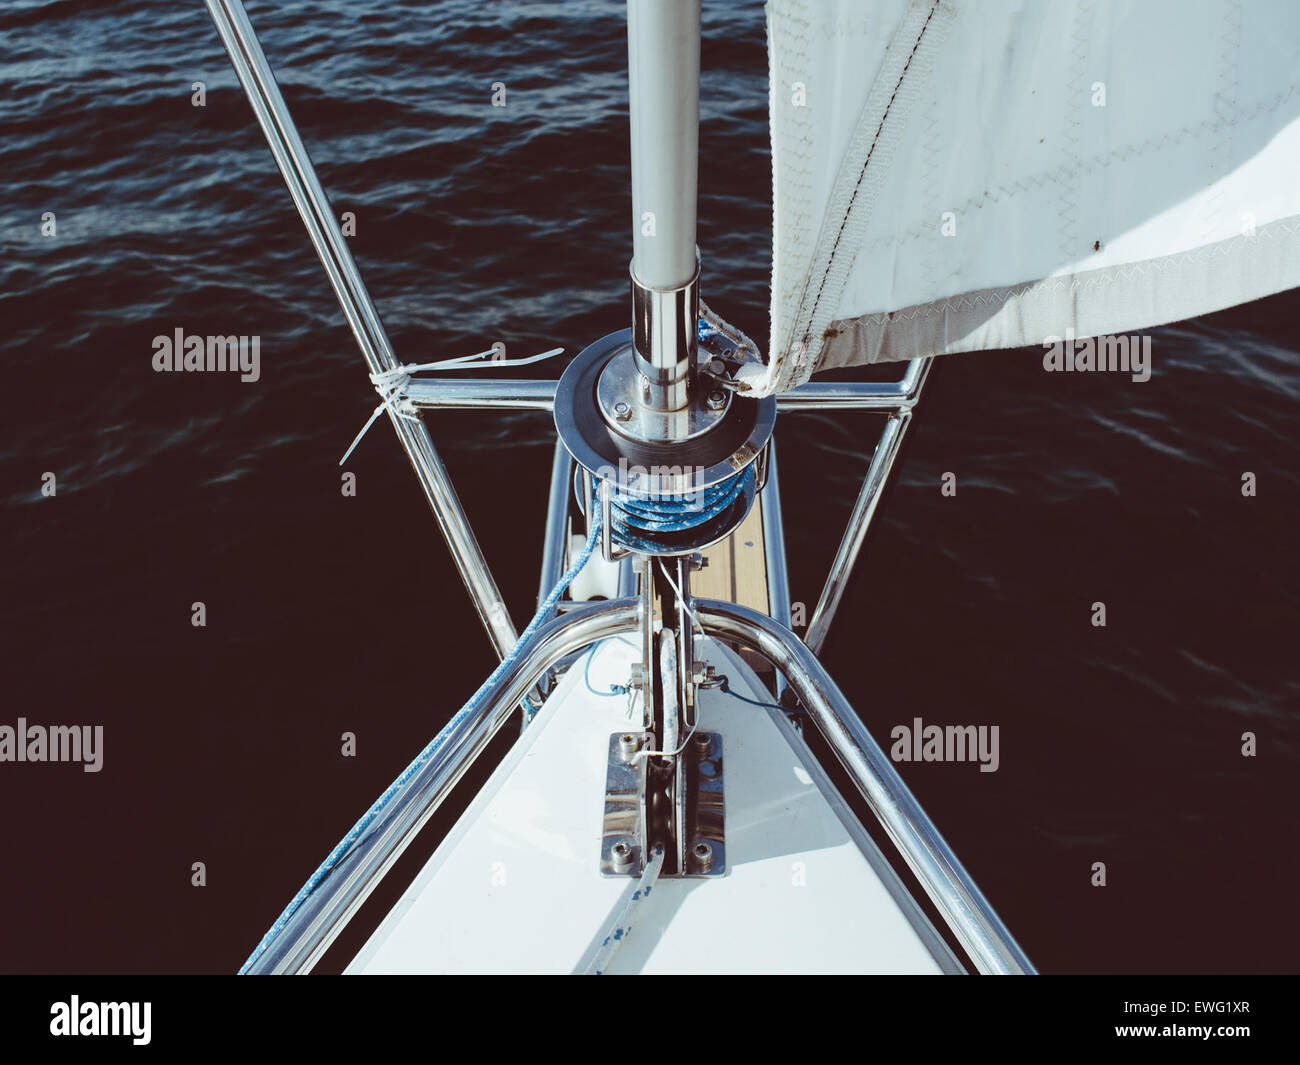 Sailboat Wench on Boat in Water Boat Nautical Sailboat Wench Sailing Wench Water Wench ocean outdoor sail boat sailing - Stock Image